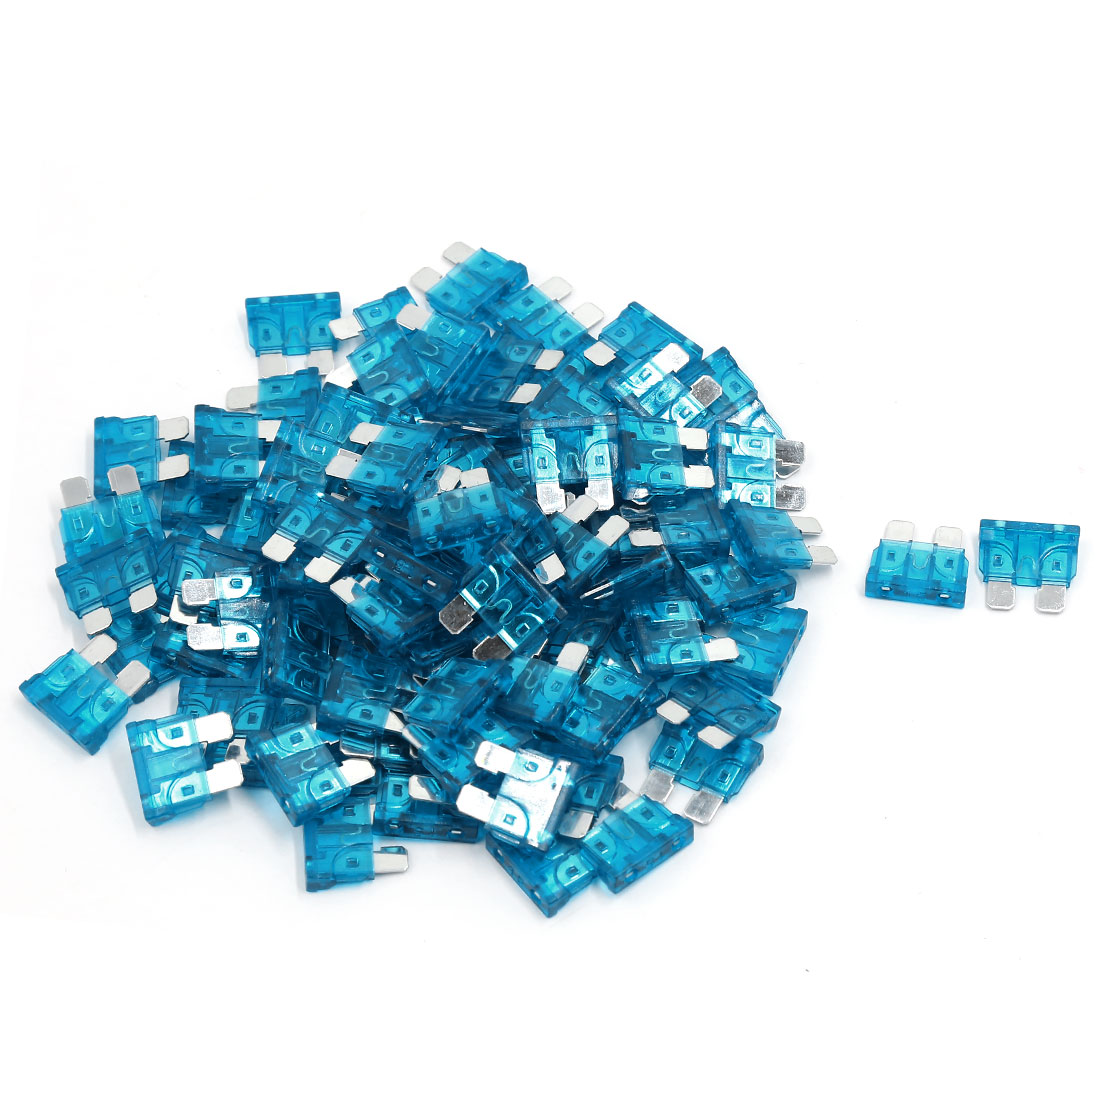 100 Pcs Blue Plasic Housing Mototrcycle Car Medium Size Blade Fuse Fuses 15A